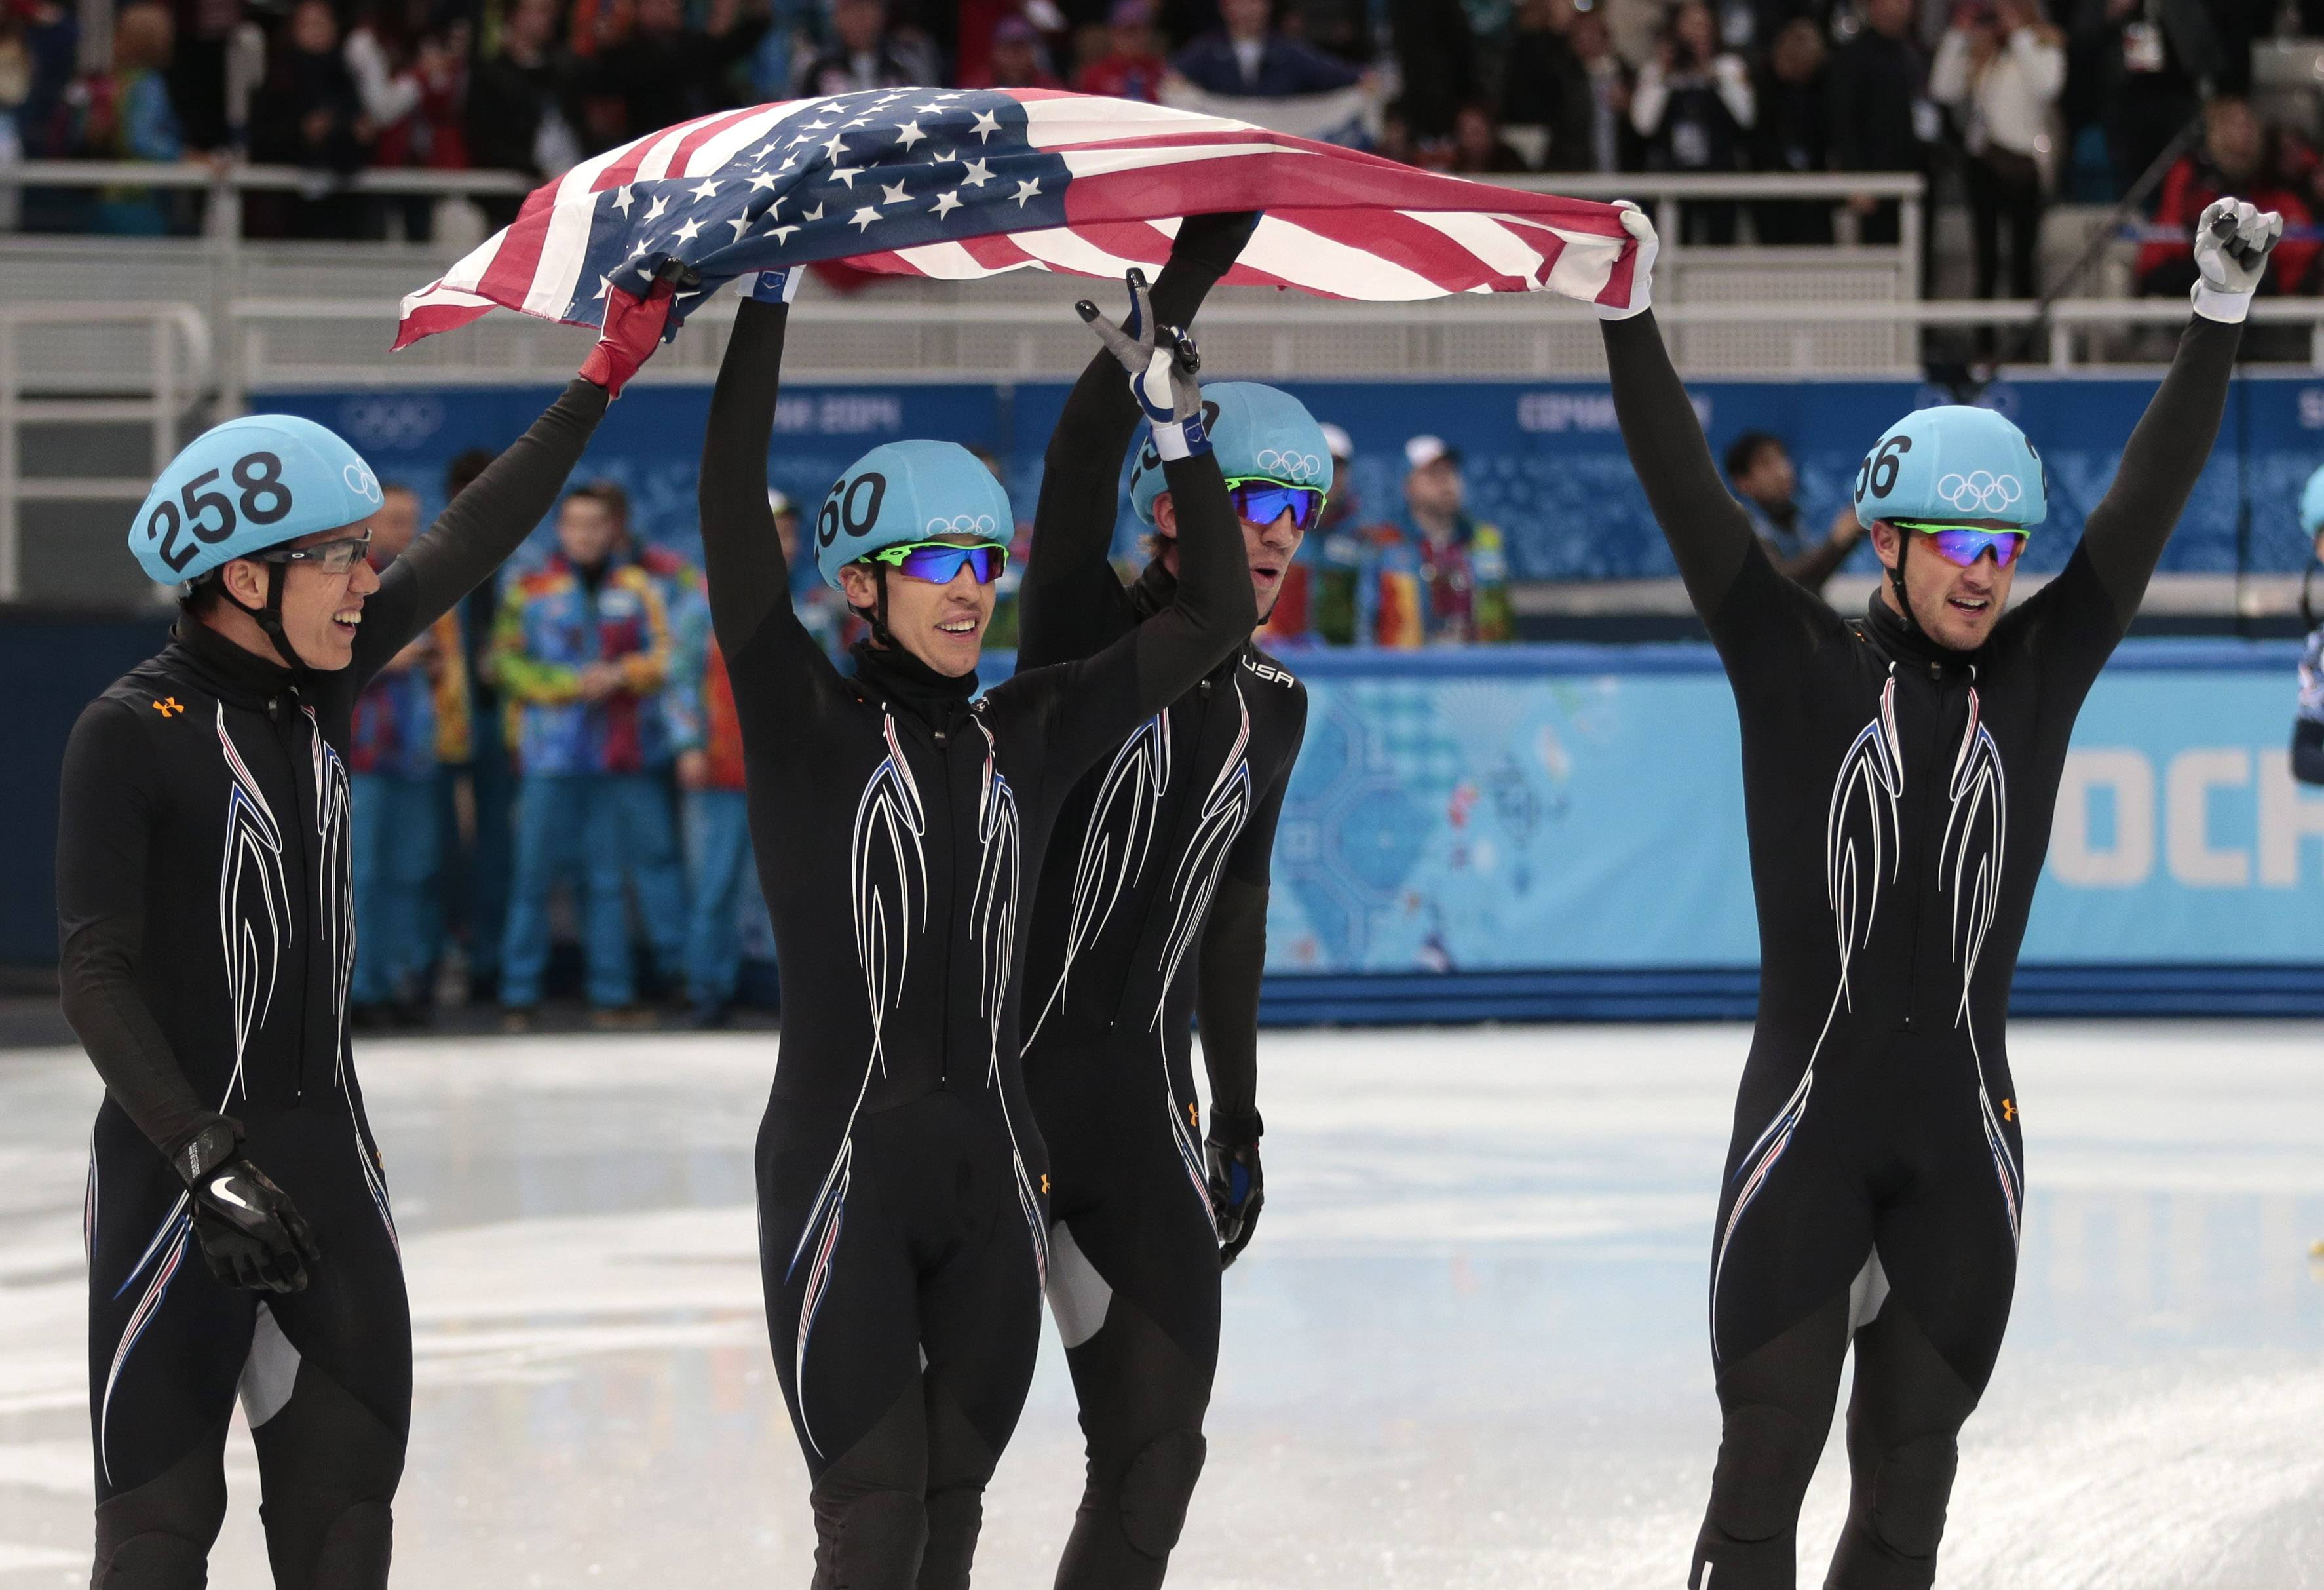 From left, J.R. Celski of the United States, Jordan Malone of the United States, Chris Creveling of the United States and Eduardo Alvarez of the United States celebrate their second place in the men's 5000m short track speedskating relay final.